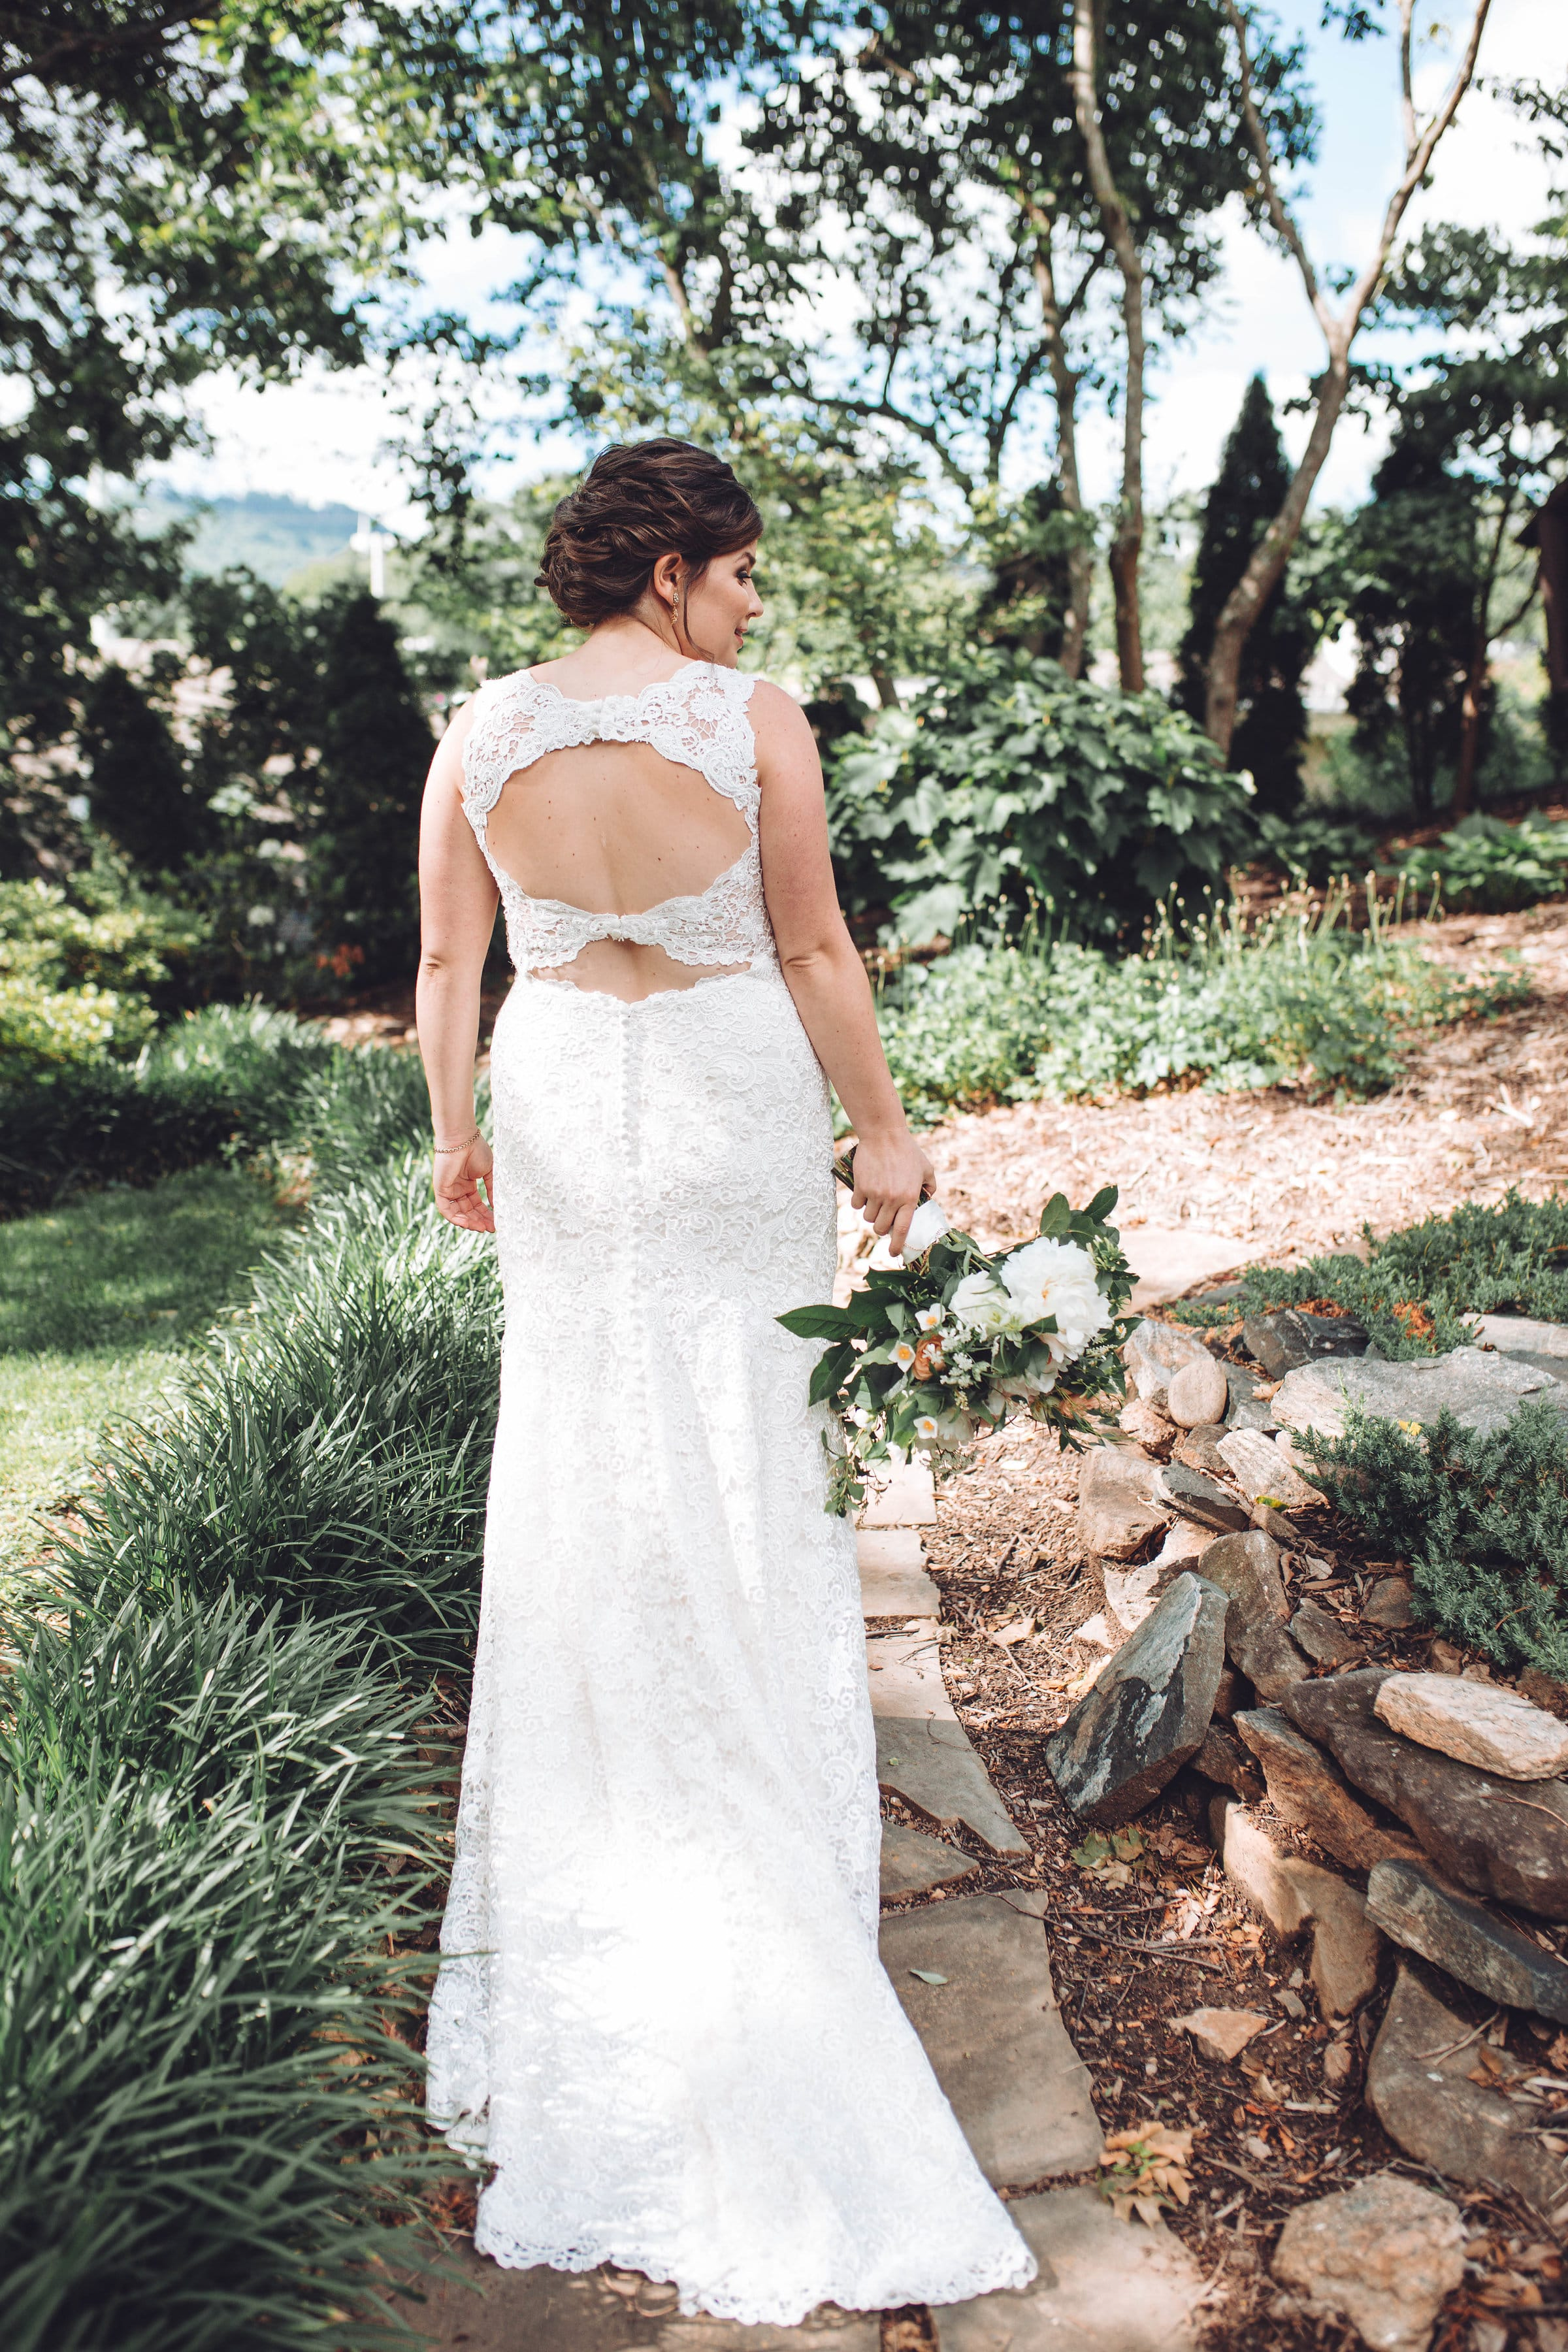 Keyhole-back Lace Wedding Dress in Classic and Romantic Nuptials